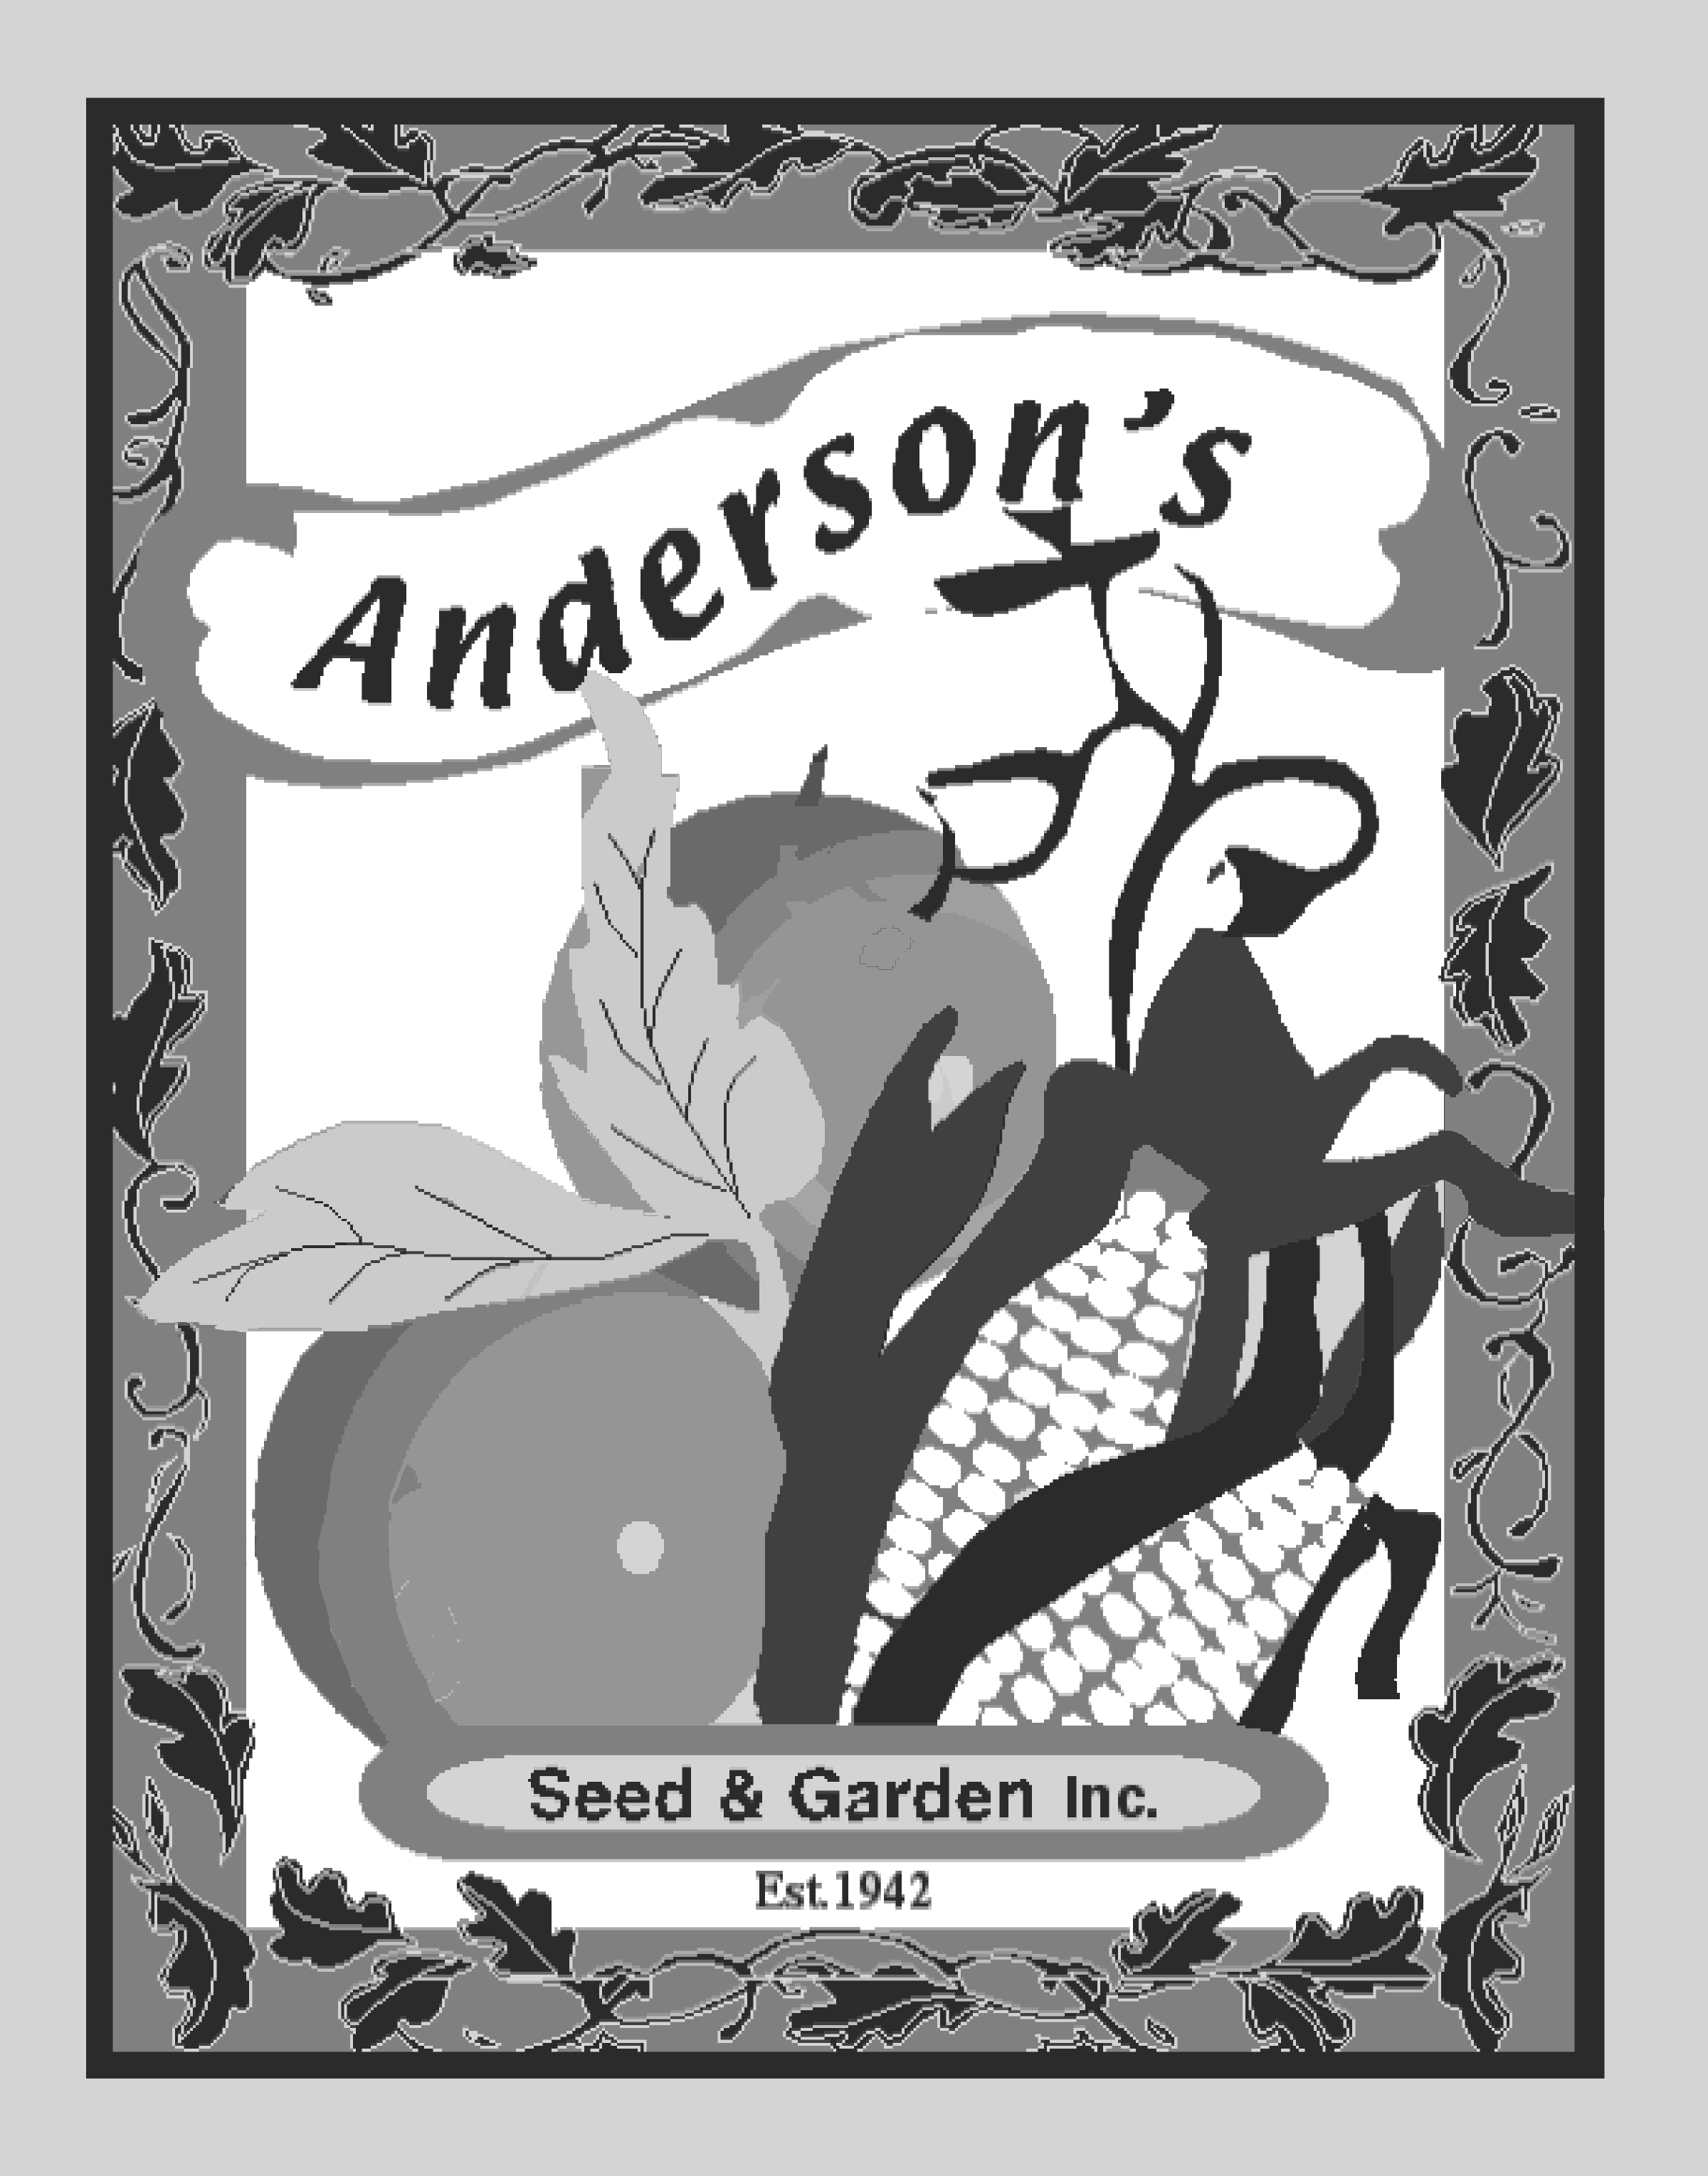 Honeydew Open Pollinated Melon Seed 1 oz.